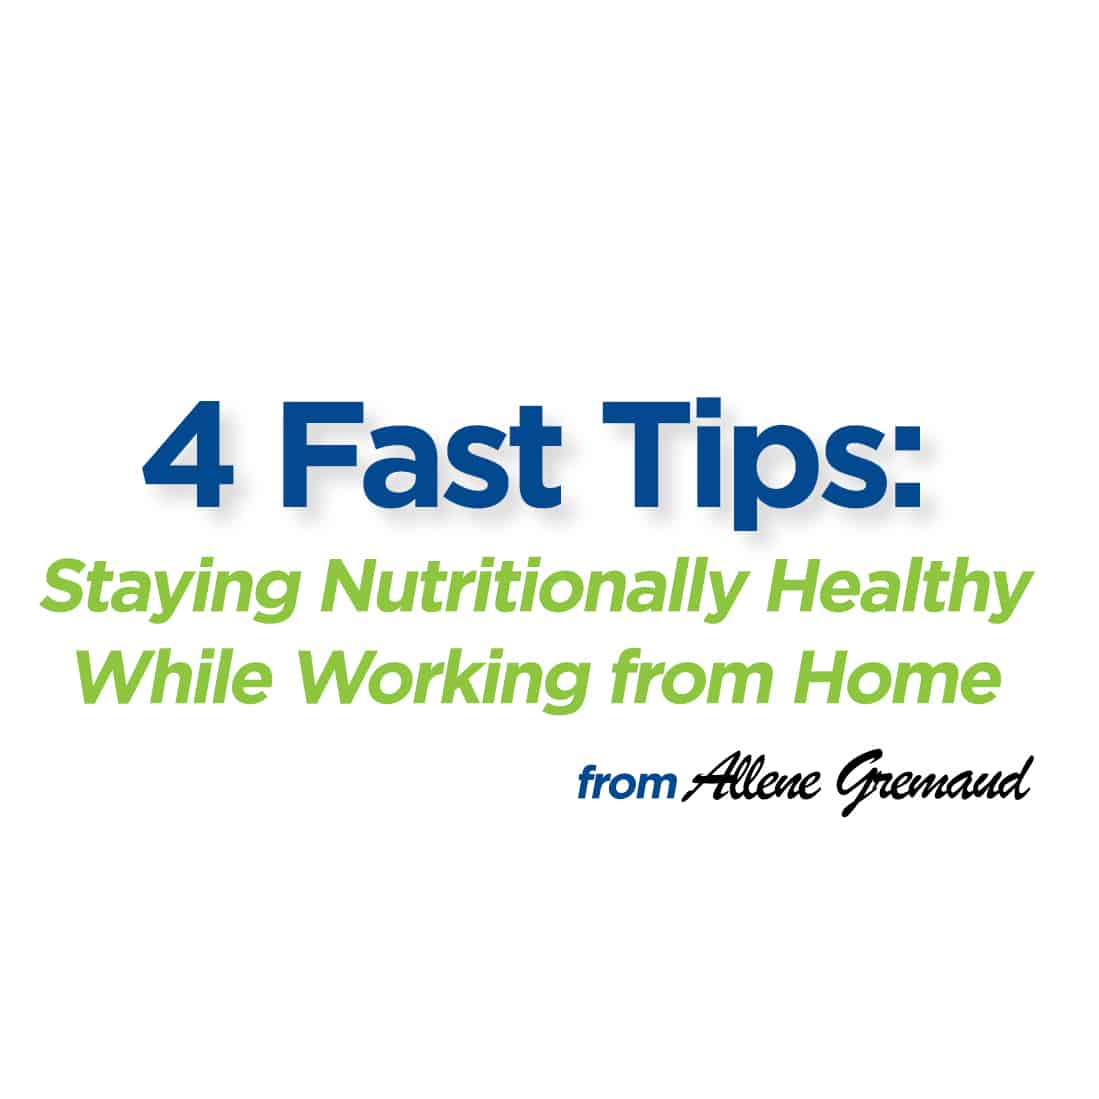 4 Fast Tips:  Staying Nutritionally Healthy While Working from Home